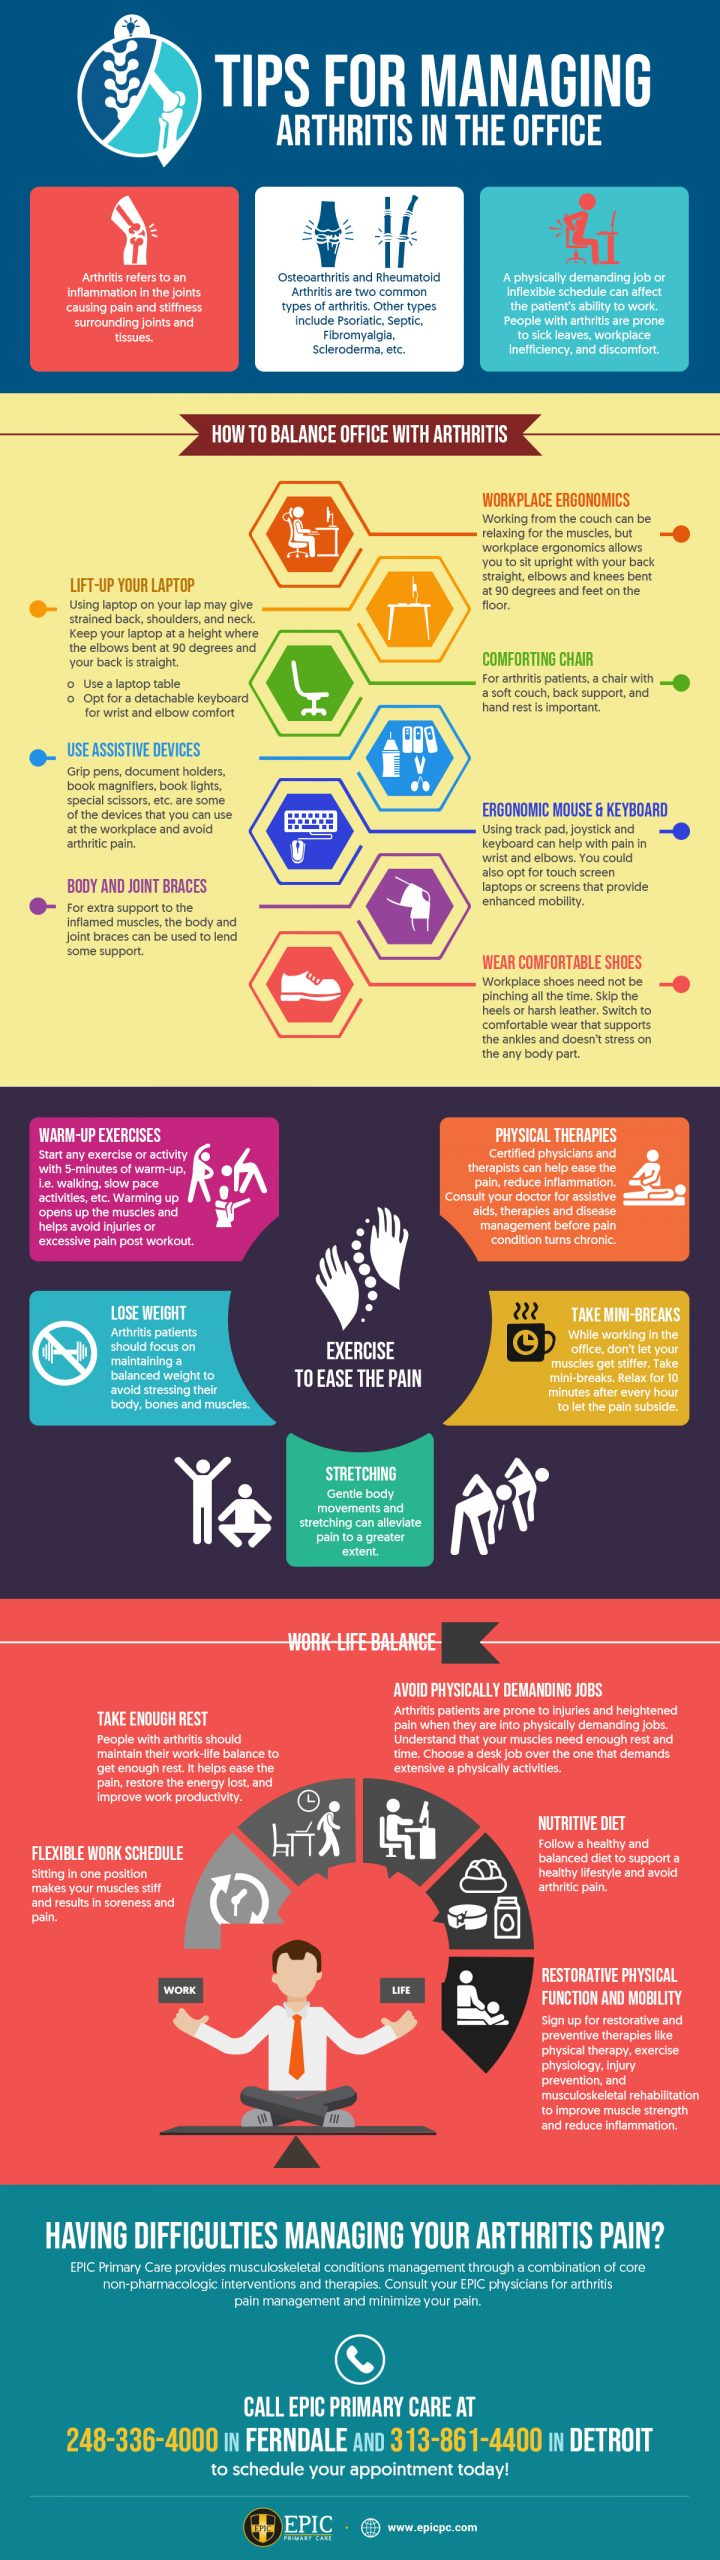 Tips for Managing Arthritis in the Office – Infographic